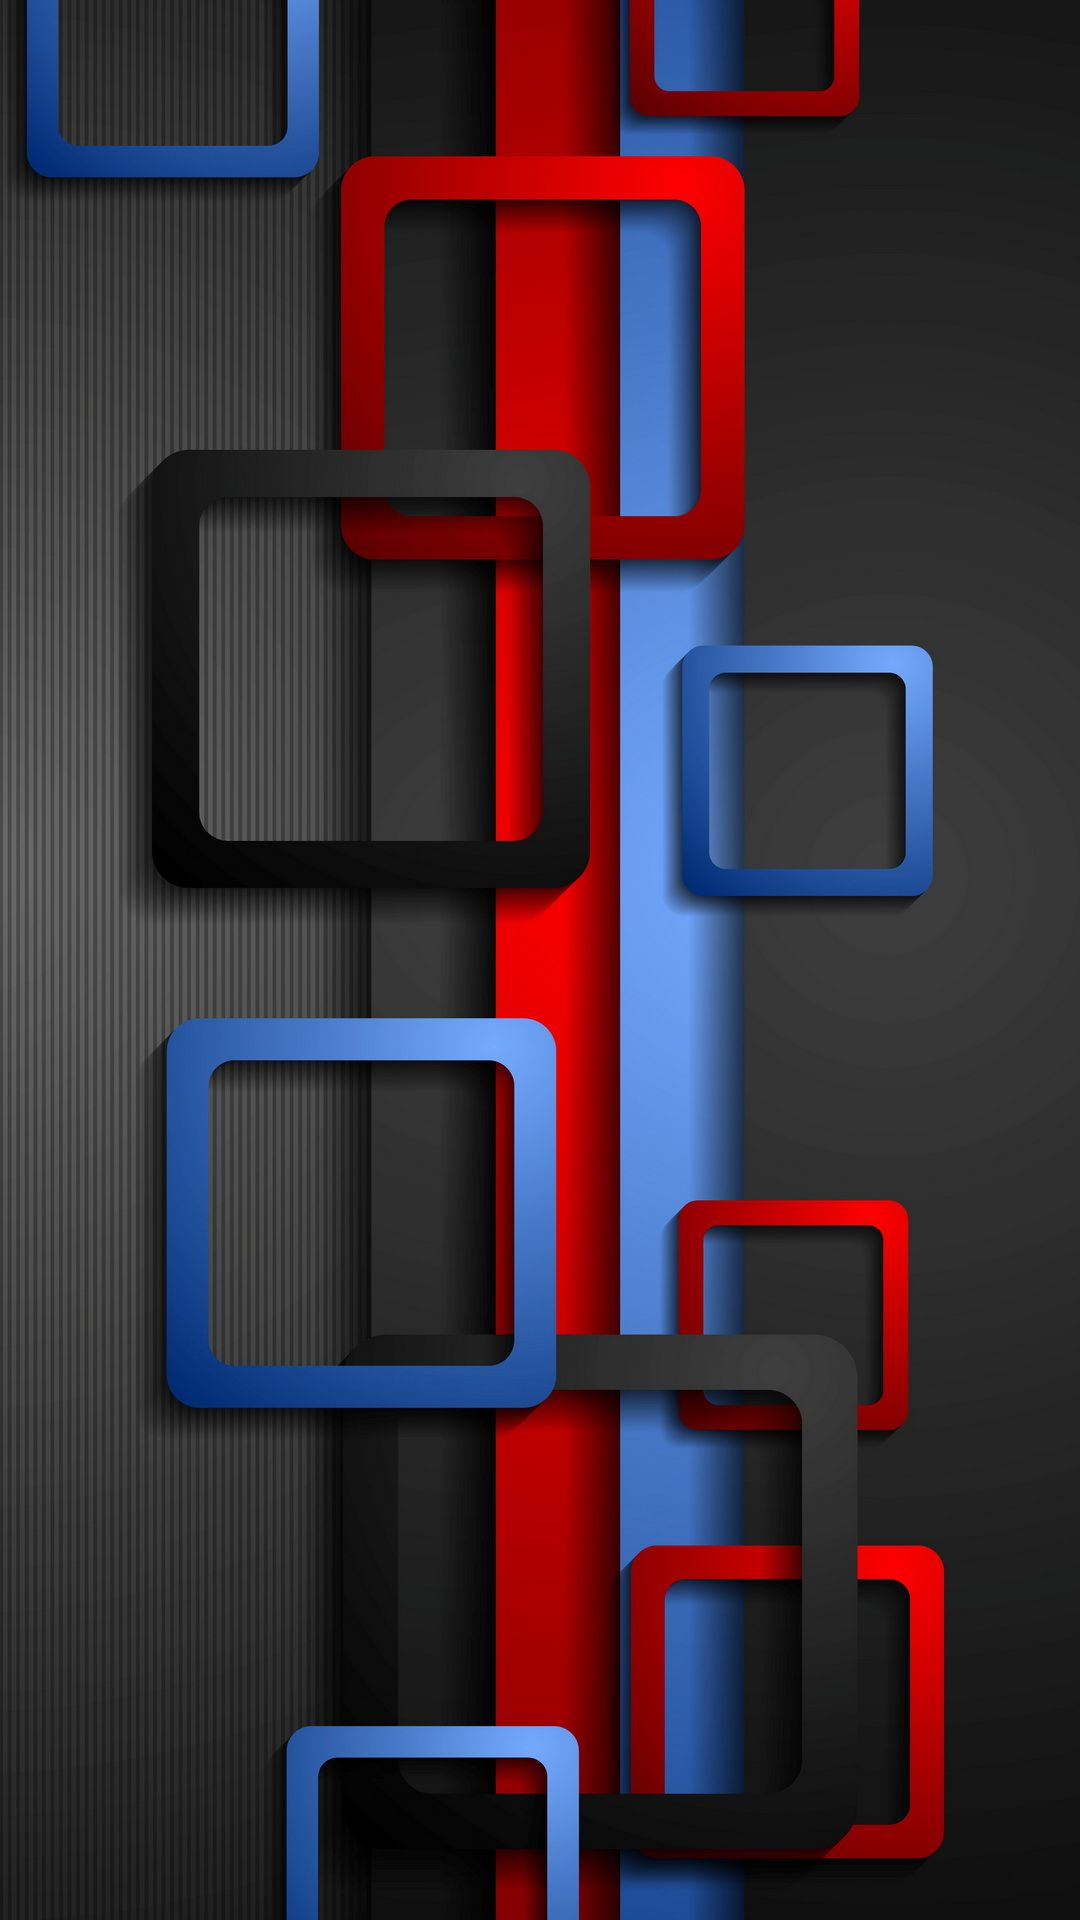 Wallpaper Full HD for Mobile with Red Blue and Black Box